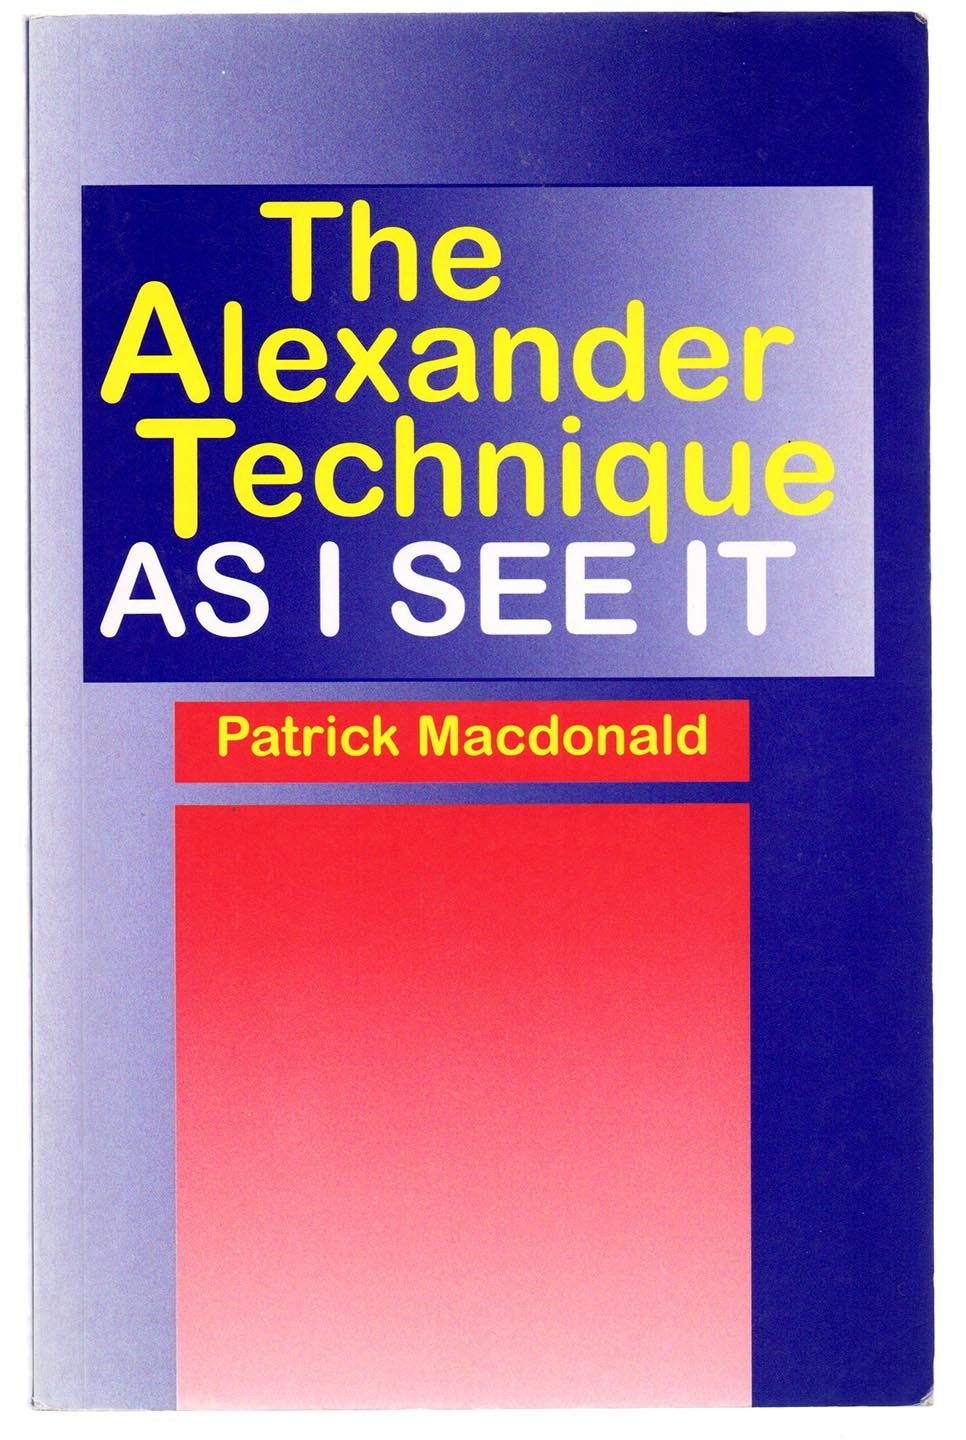 The Alexander Technique As I See It